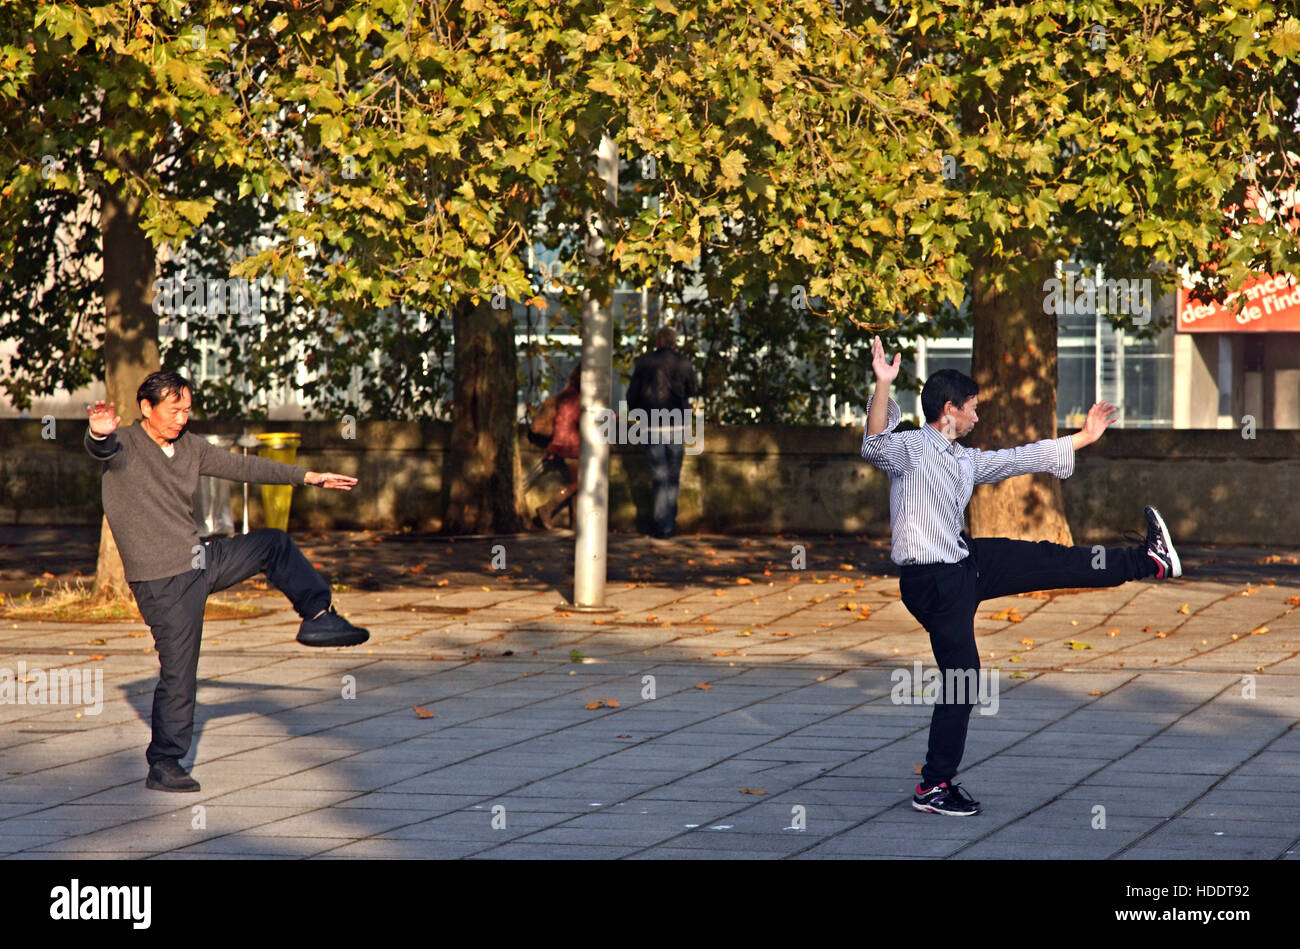 Early morning Tai Chi exercise in Parc de la Villette, in the 19th arrondissement of Paris, France. - Stock Image